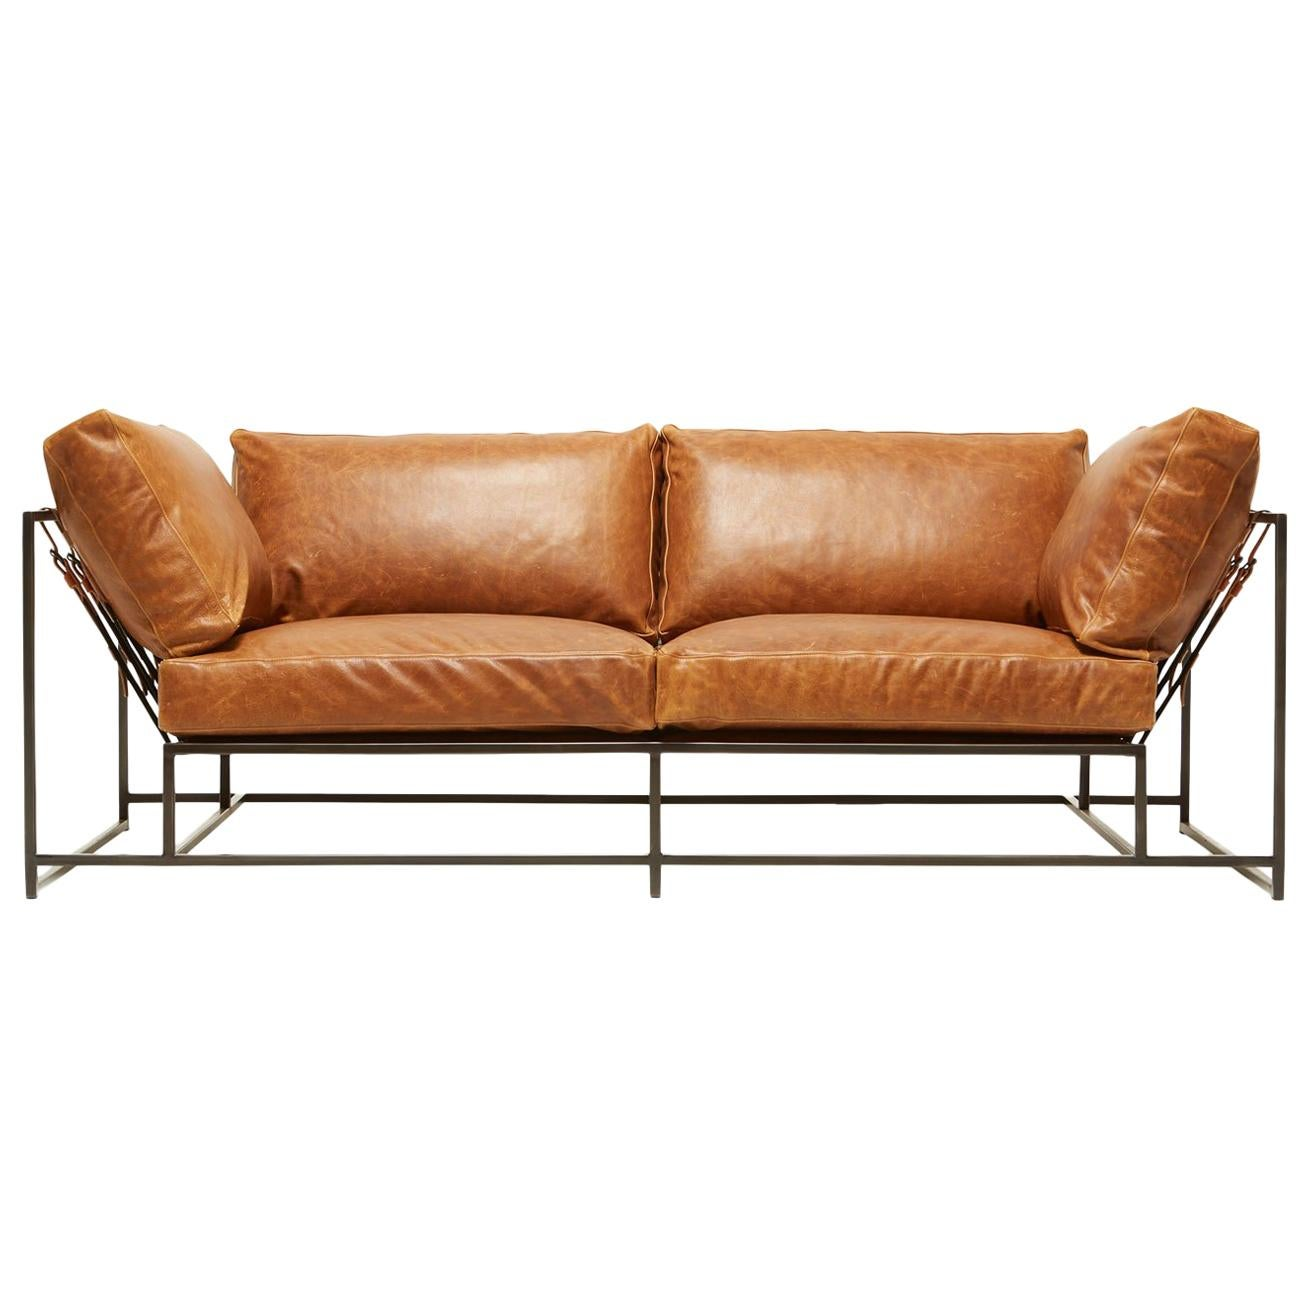 Potomac Tan Leather and Blackened Steel Two-Seat Sofa